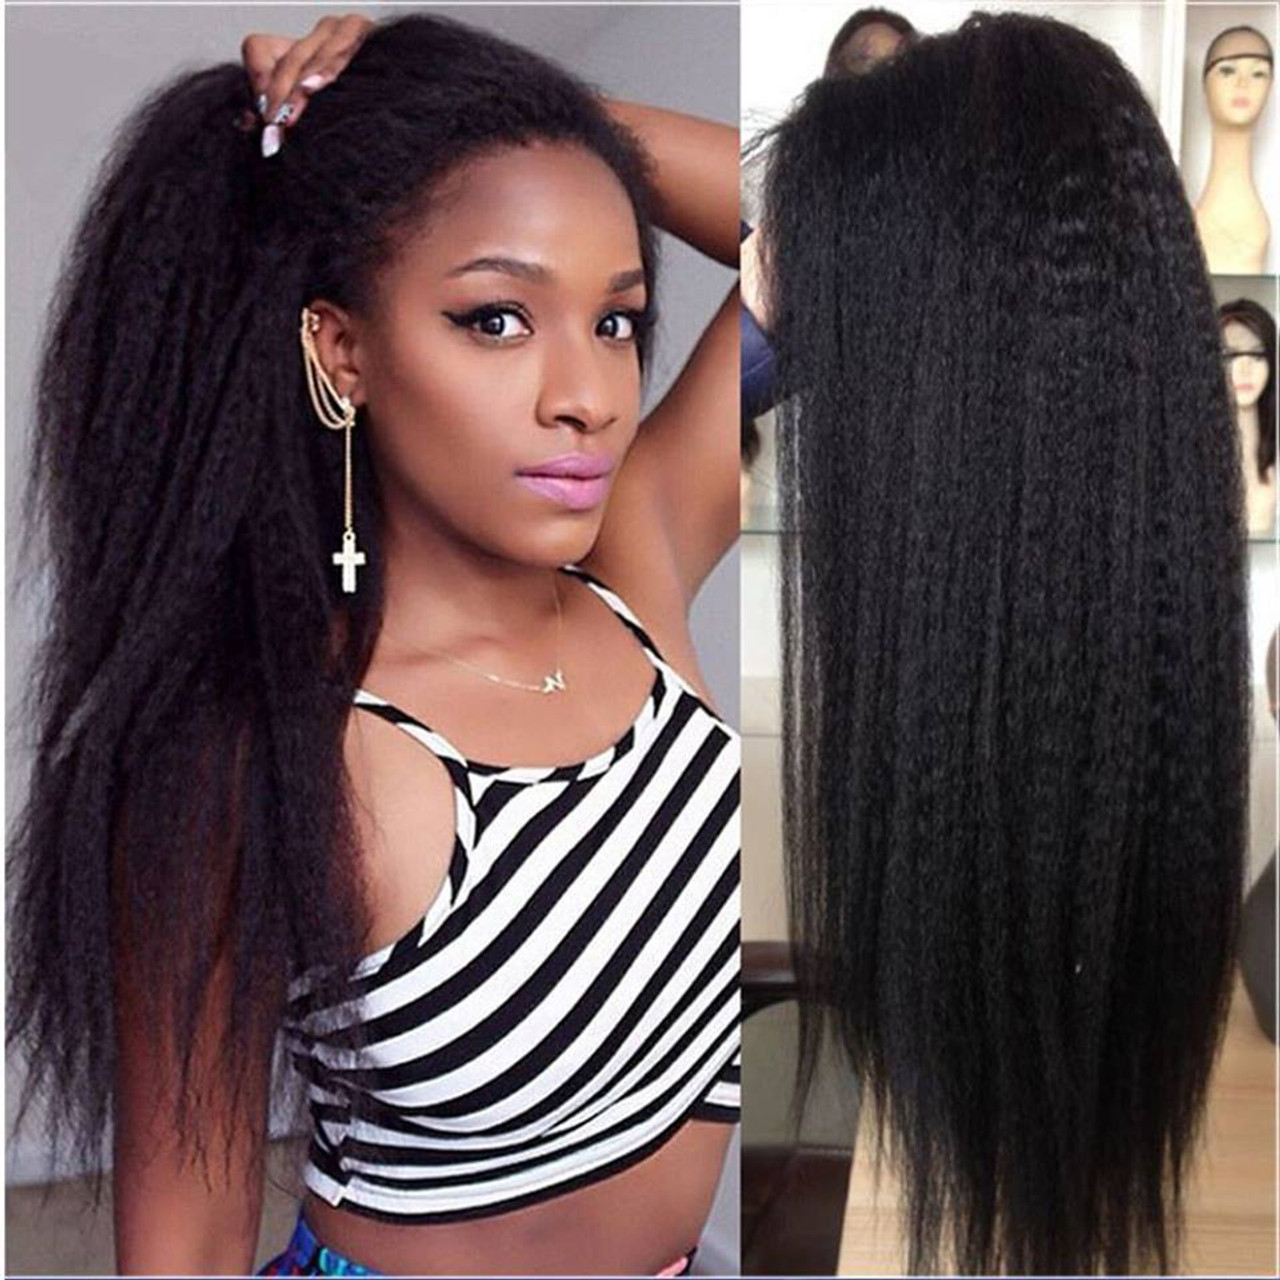 Remeehi Kinky Straight Full Lace Wigs With baby hair Indian remy hair for  black women 050349ae185a